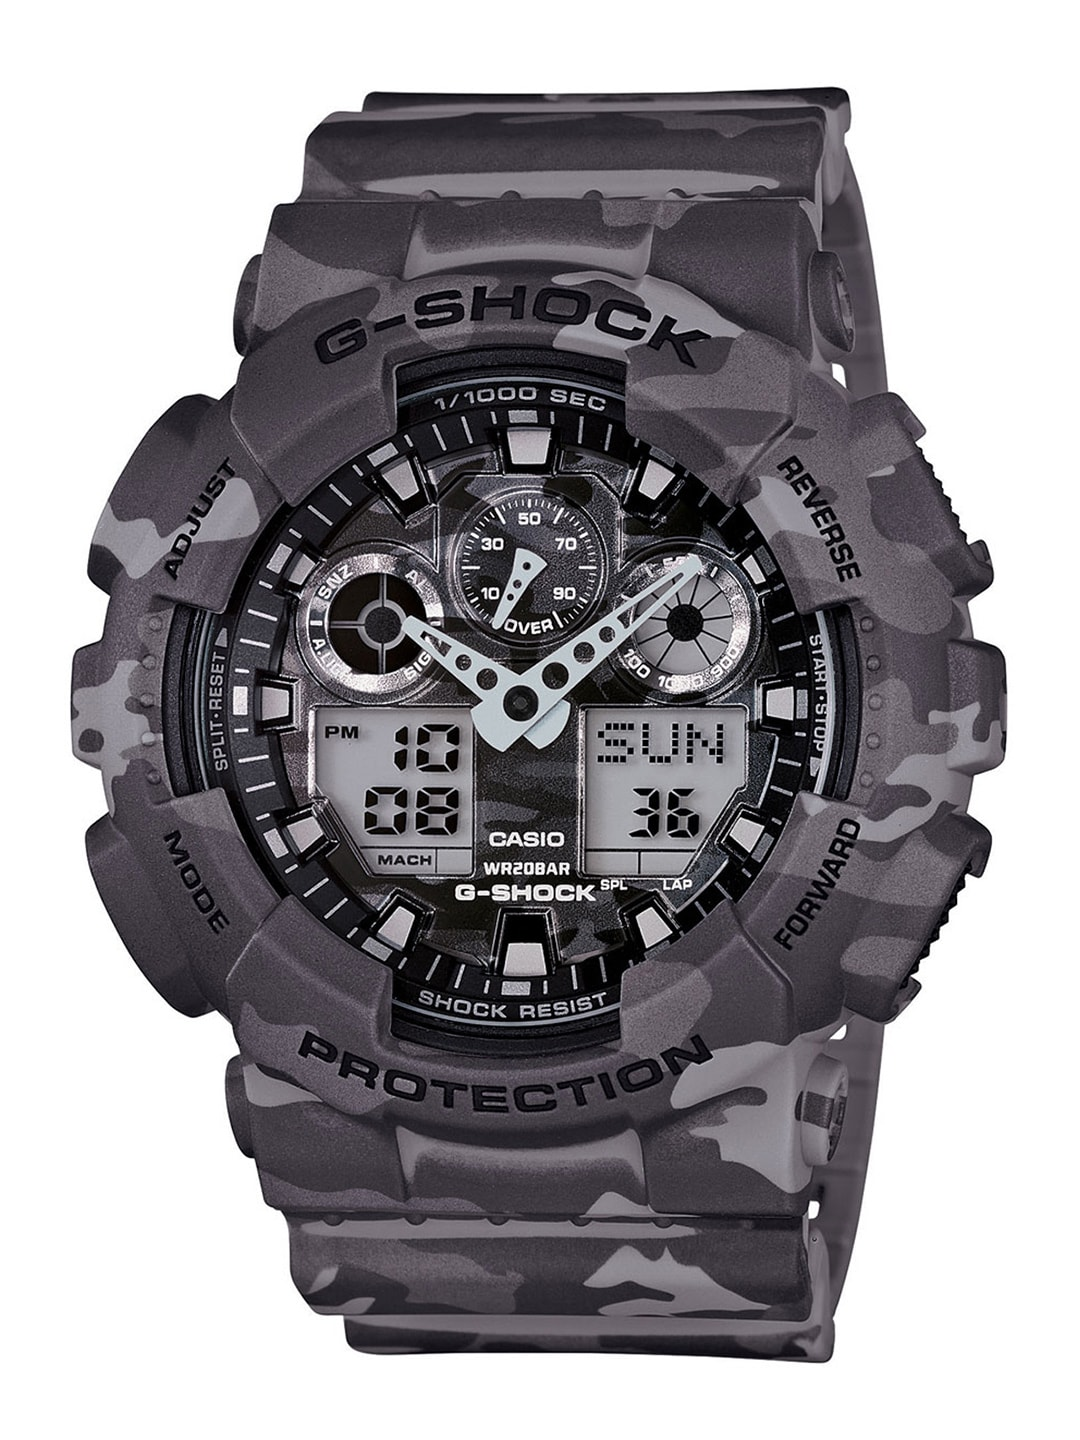 bdb9a791eb2 Casio Watches for Men - Buy Mens Casio Watch in India